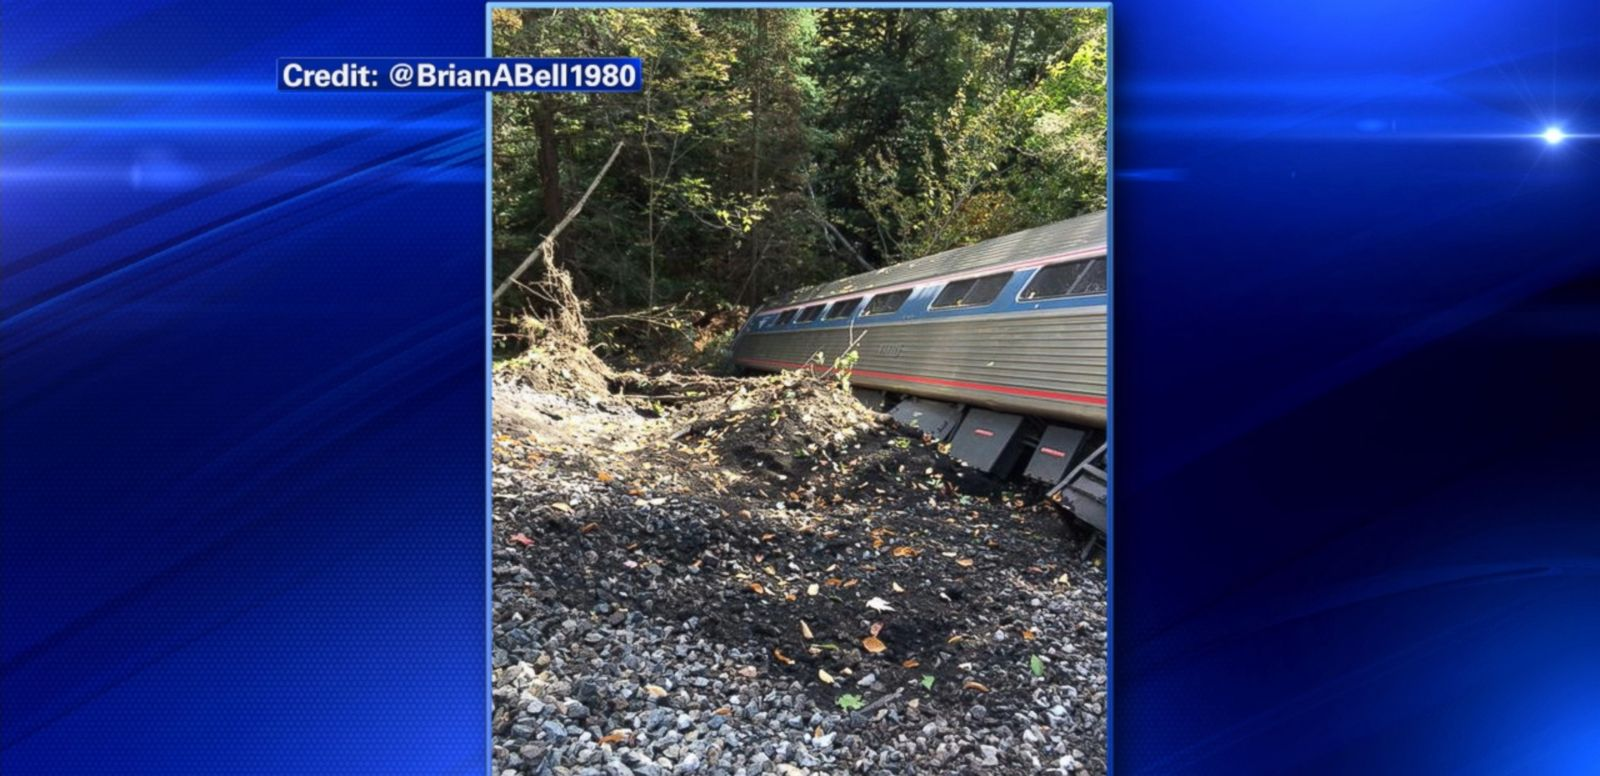 VIDEO: The train was traveling from Saint Albans, Vermont, to Washington, D.C., when it derailed after reportedly striking a rock slide on the tracks, Amtrak said.